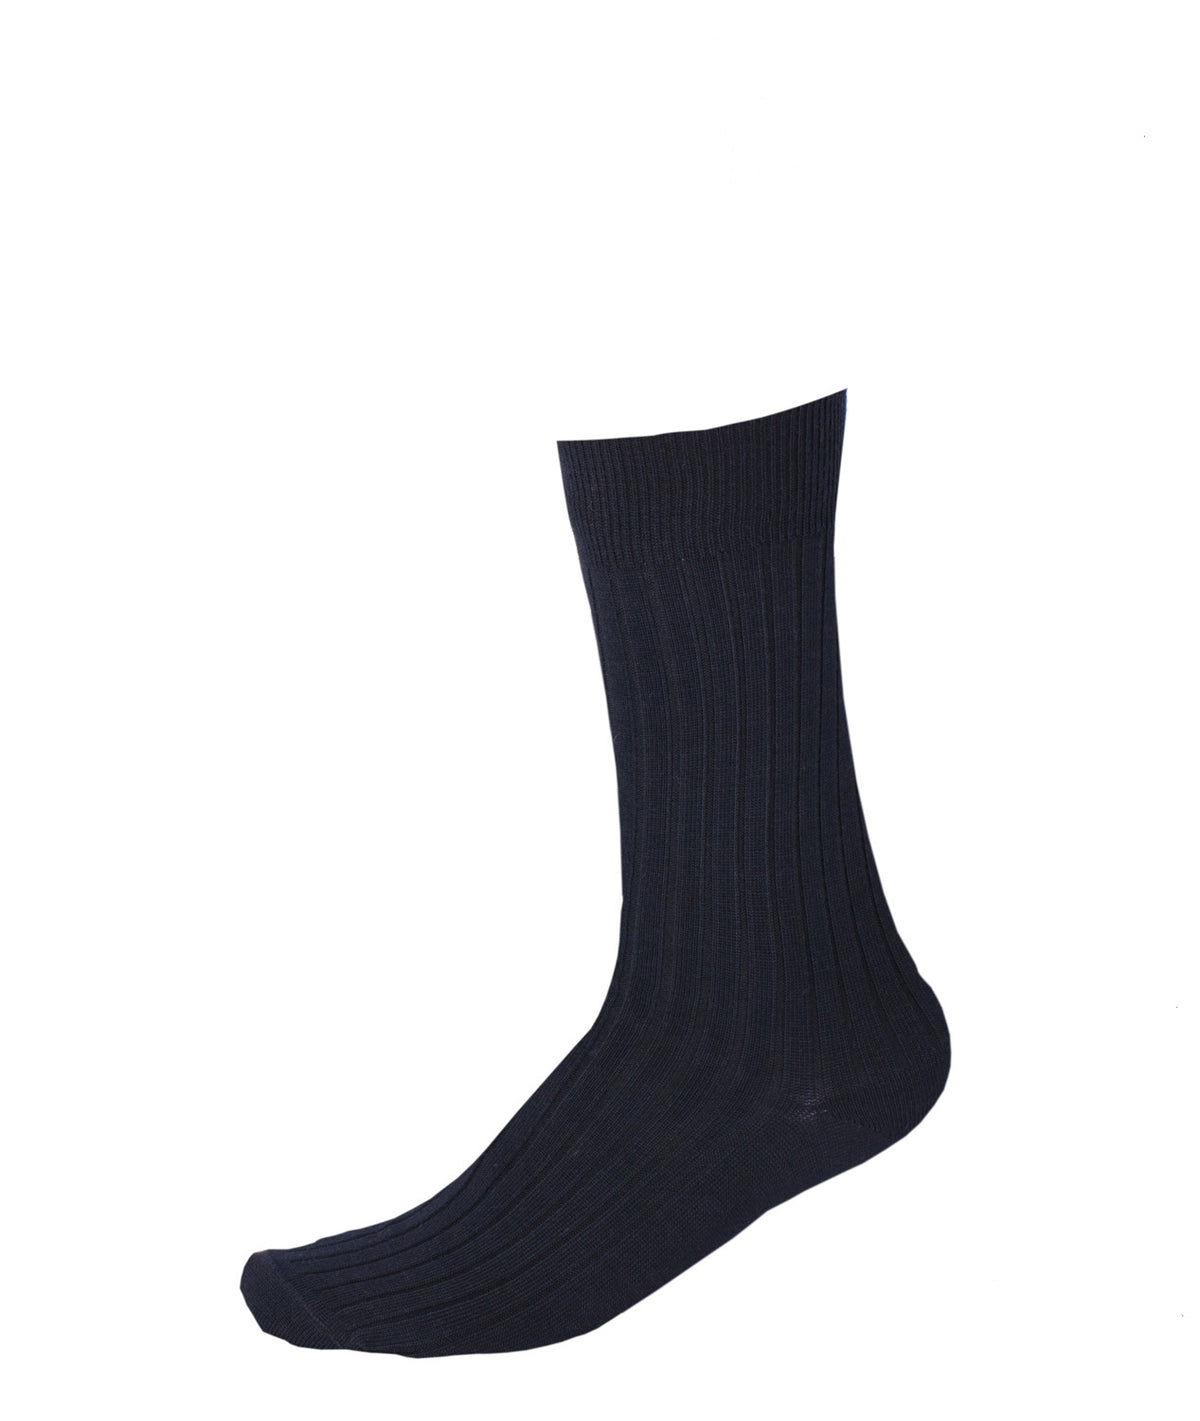 Pussyfoot Wool Crew Socks - Navy